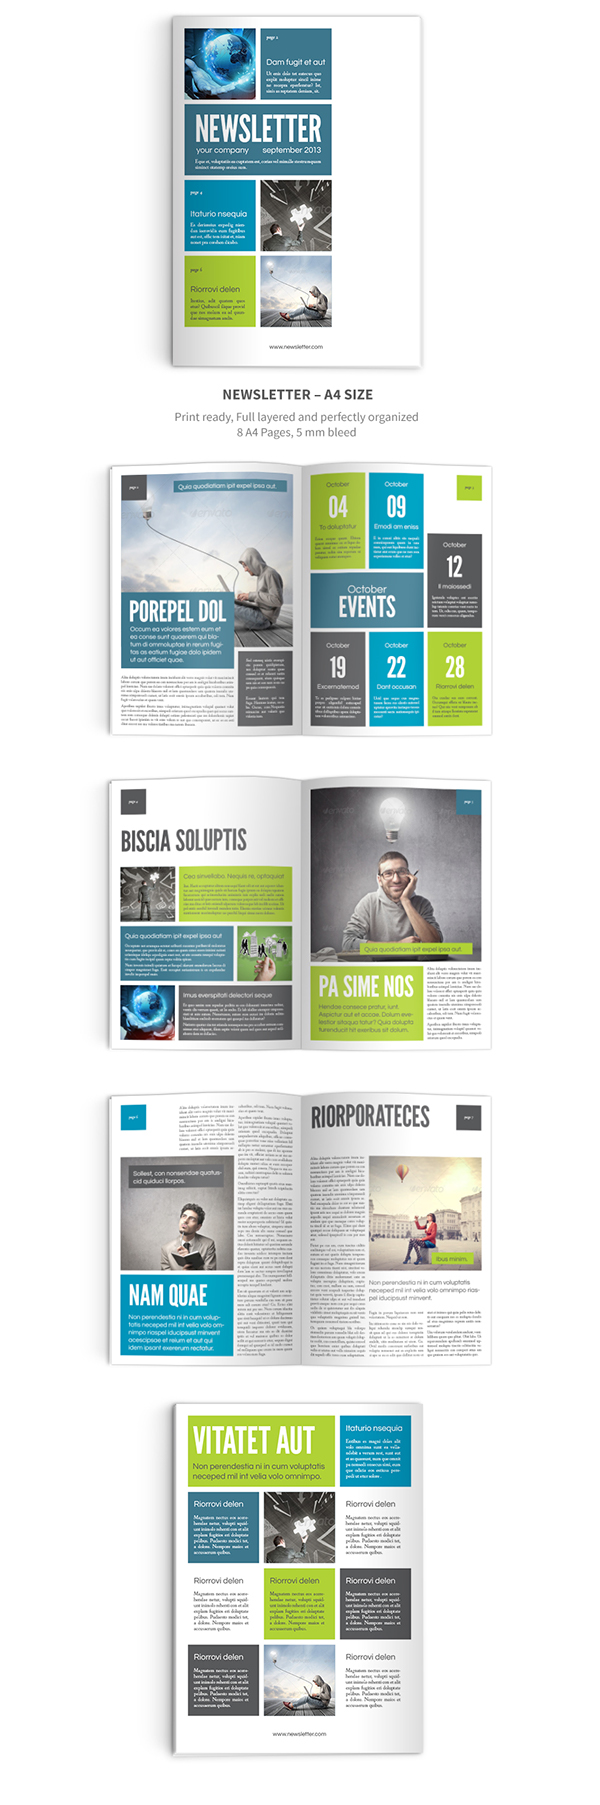 Newsletter Indesign Template 6 Pages Easy To Use Print Ready